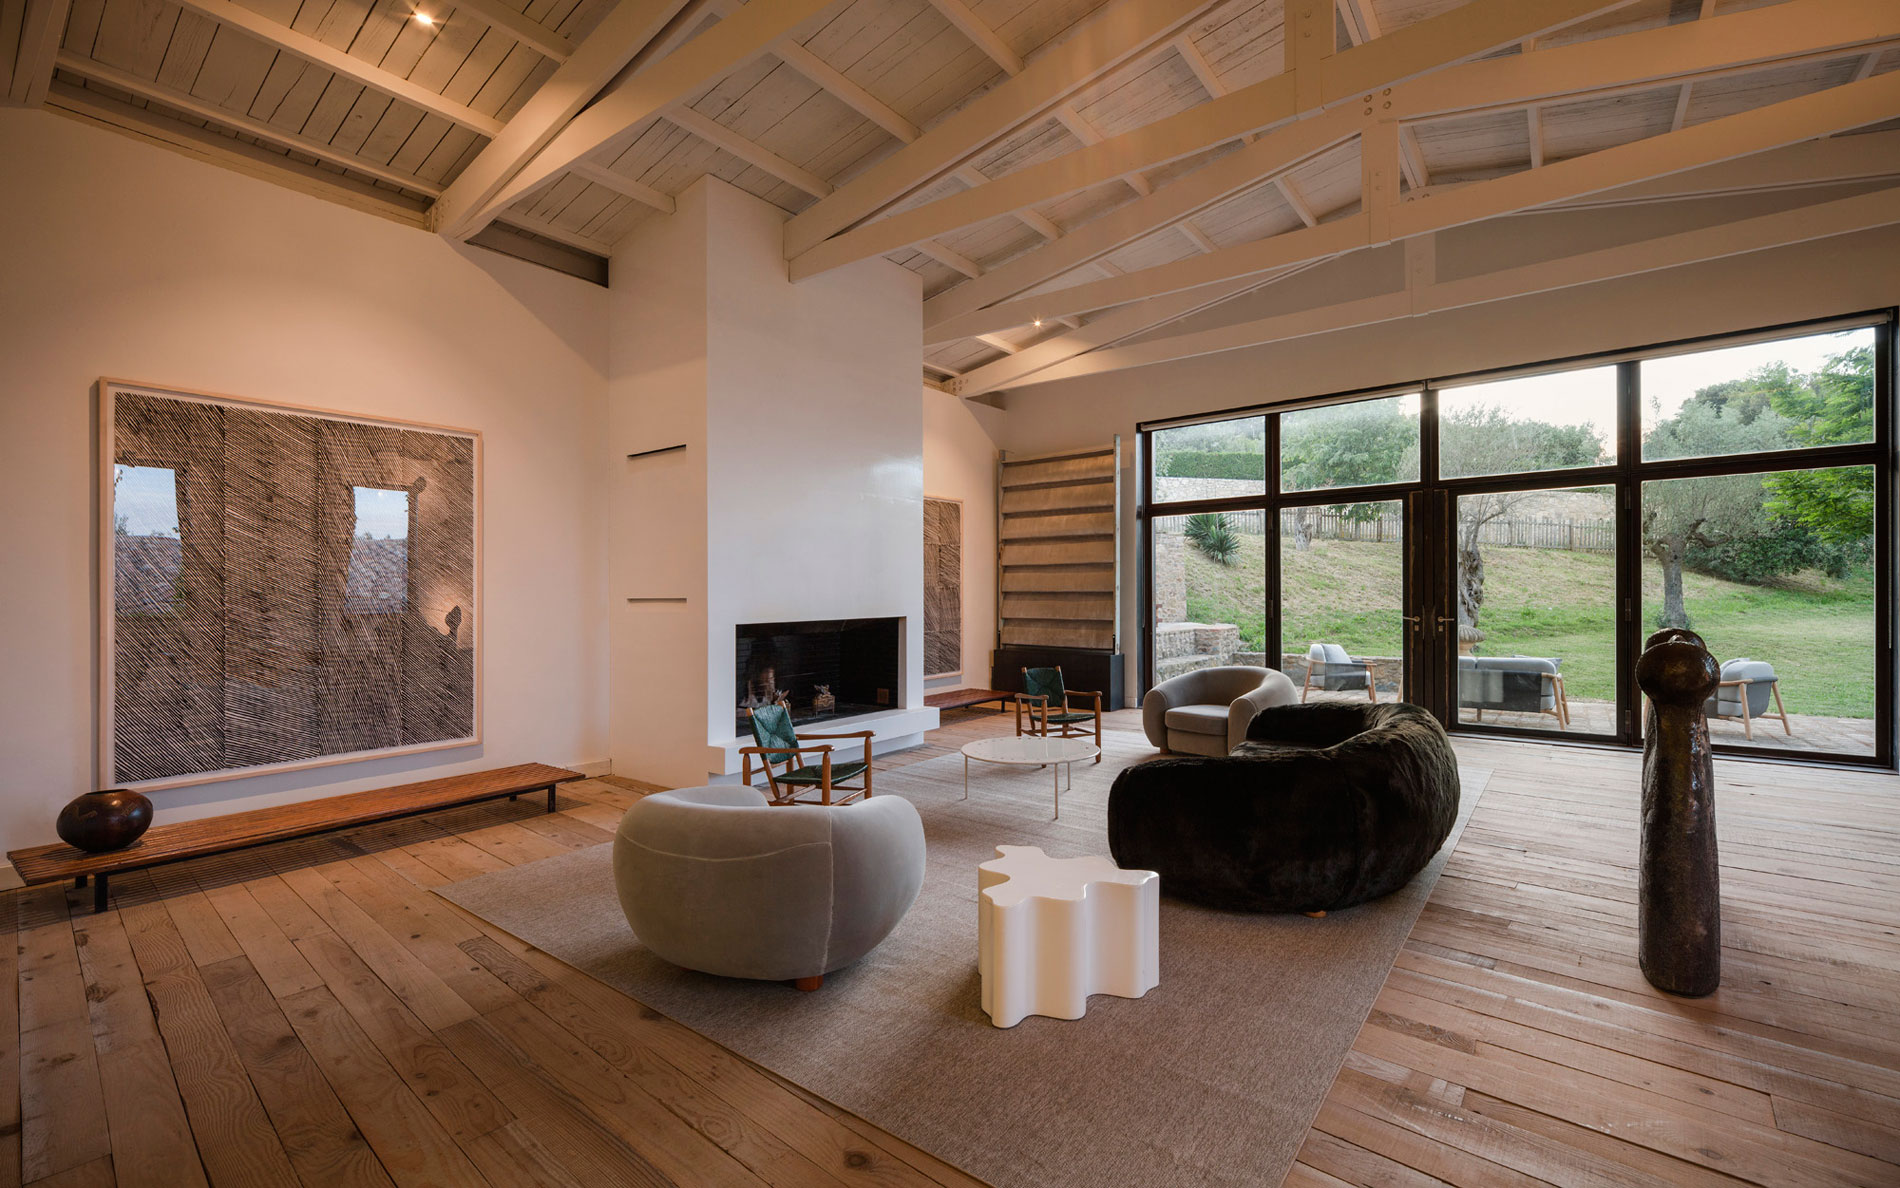 Wohnzimmergestaltung Rustikal A Rustic Home Full Of Art Designed By Francesc Rifé Studio